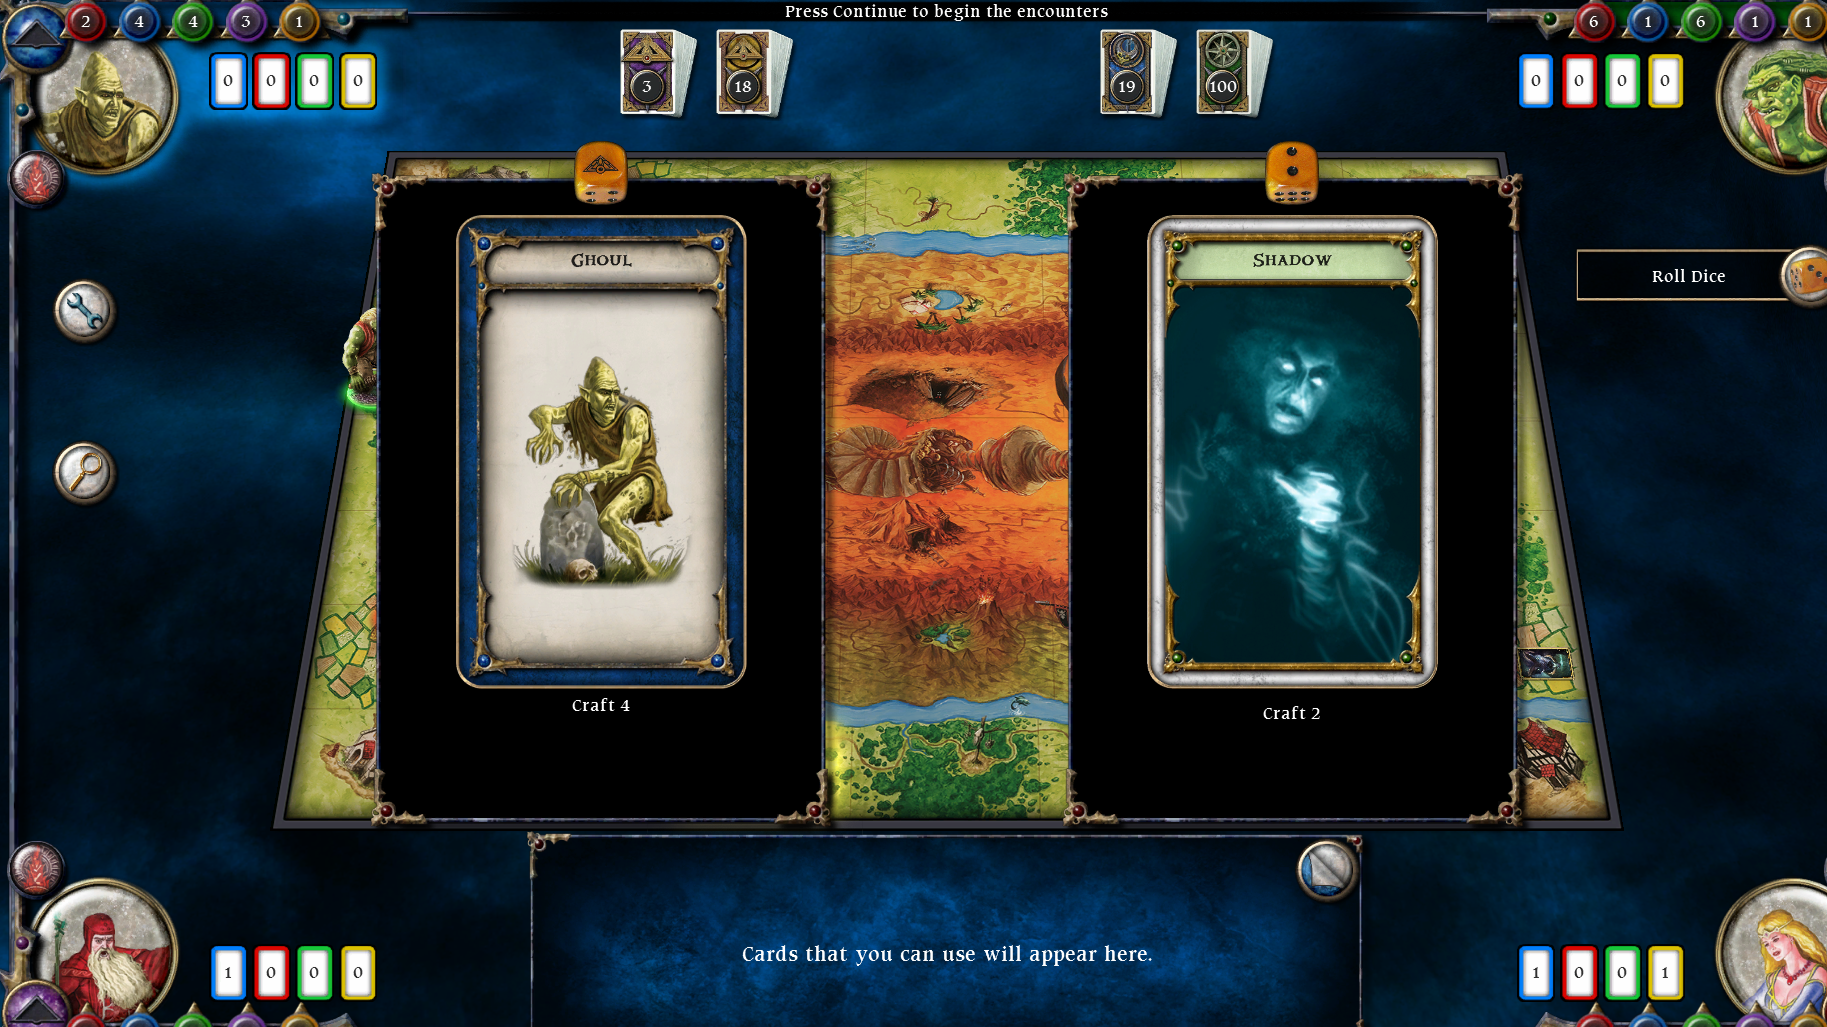 Nostalgia in gaming: A review of Talisman Digital Edition